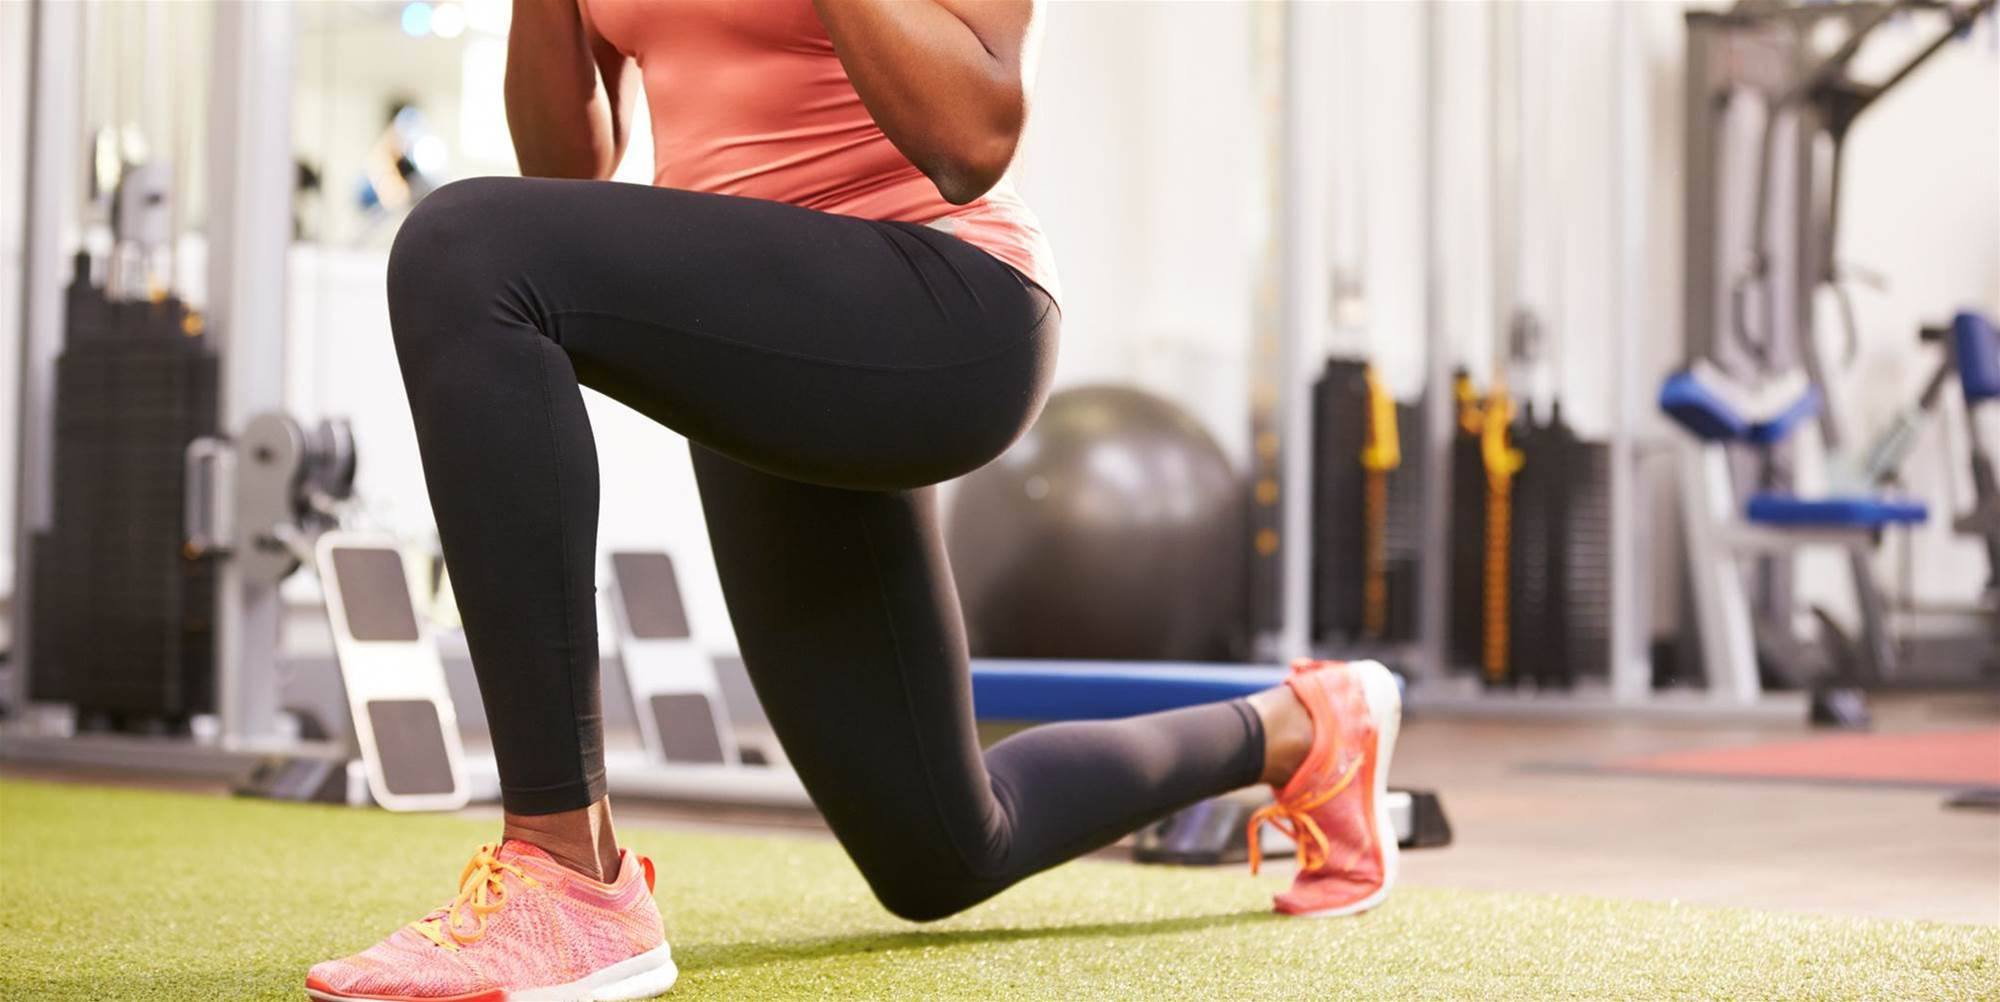 How to Do Lunges Correctly